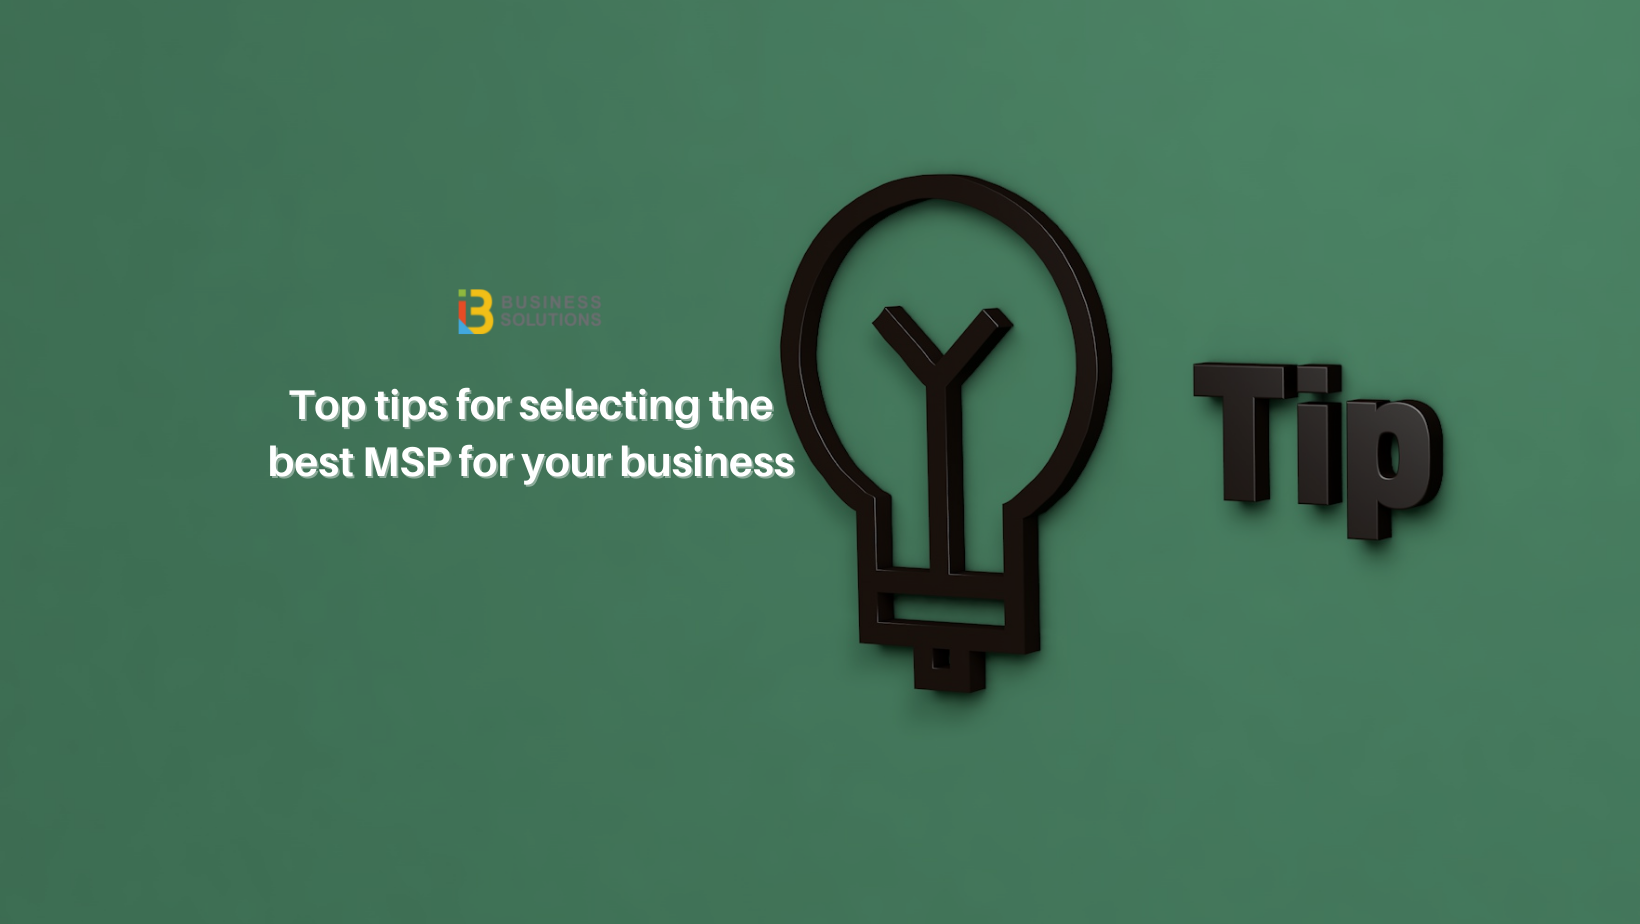 Top tips when selecting an MSP for your business